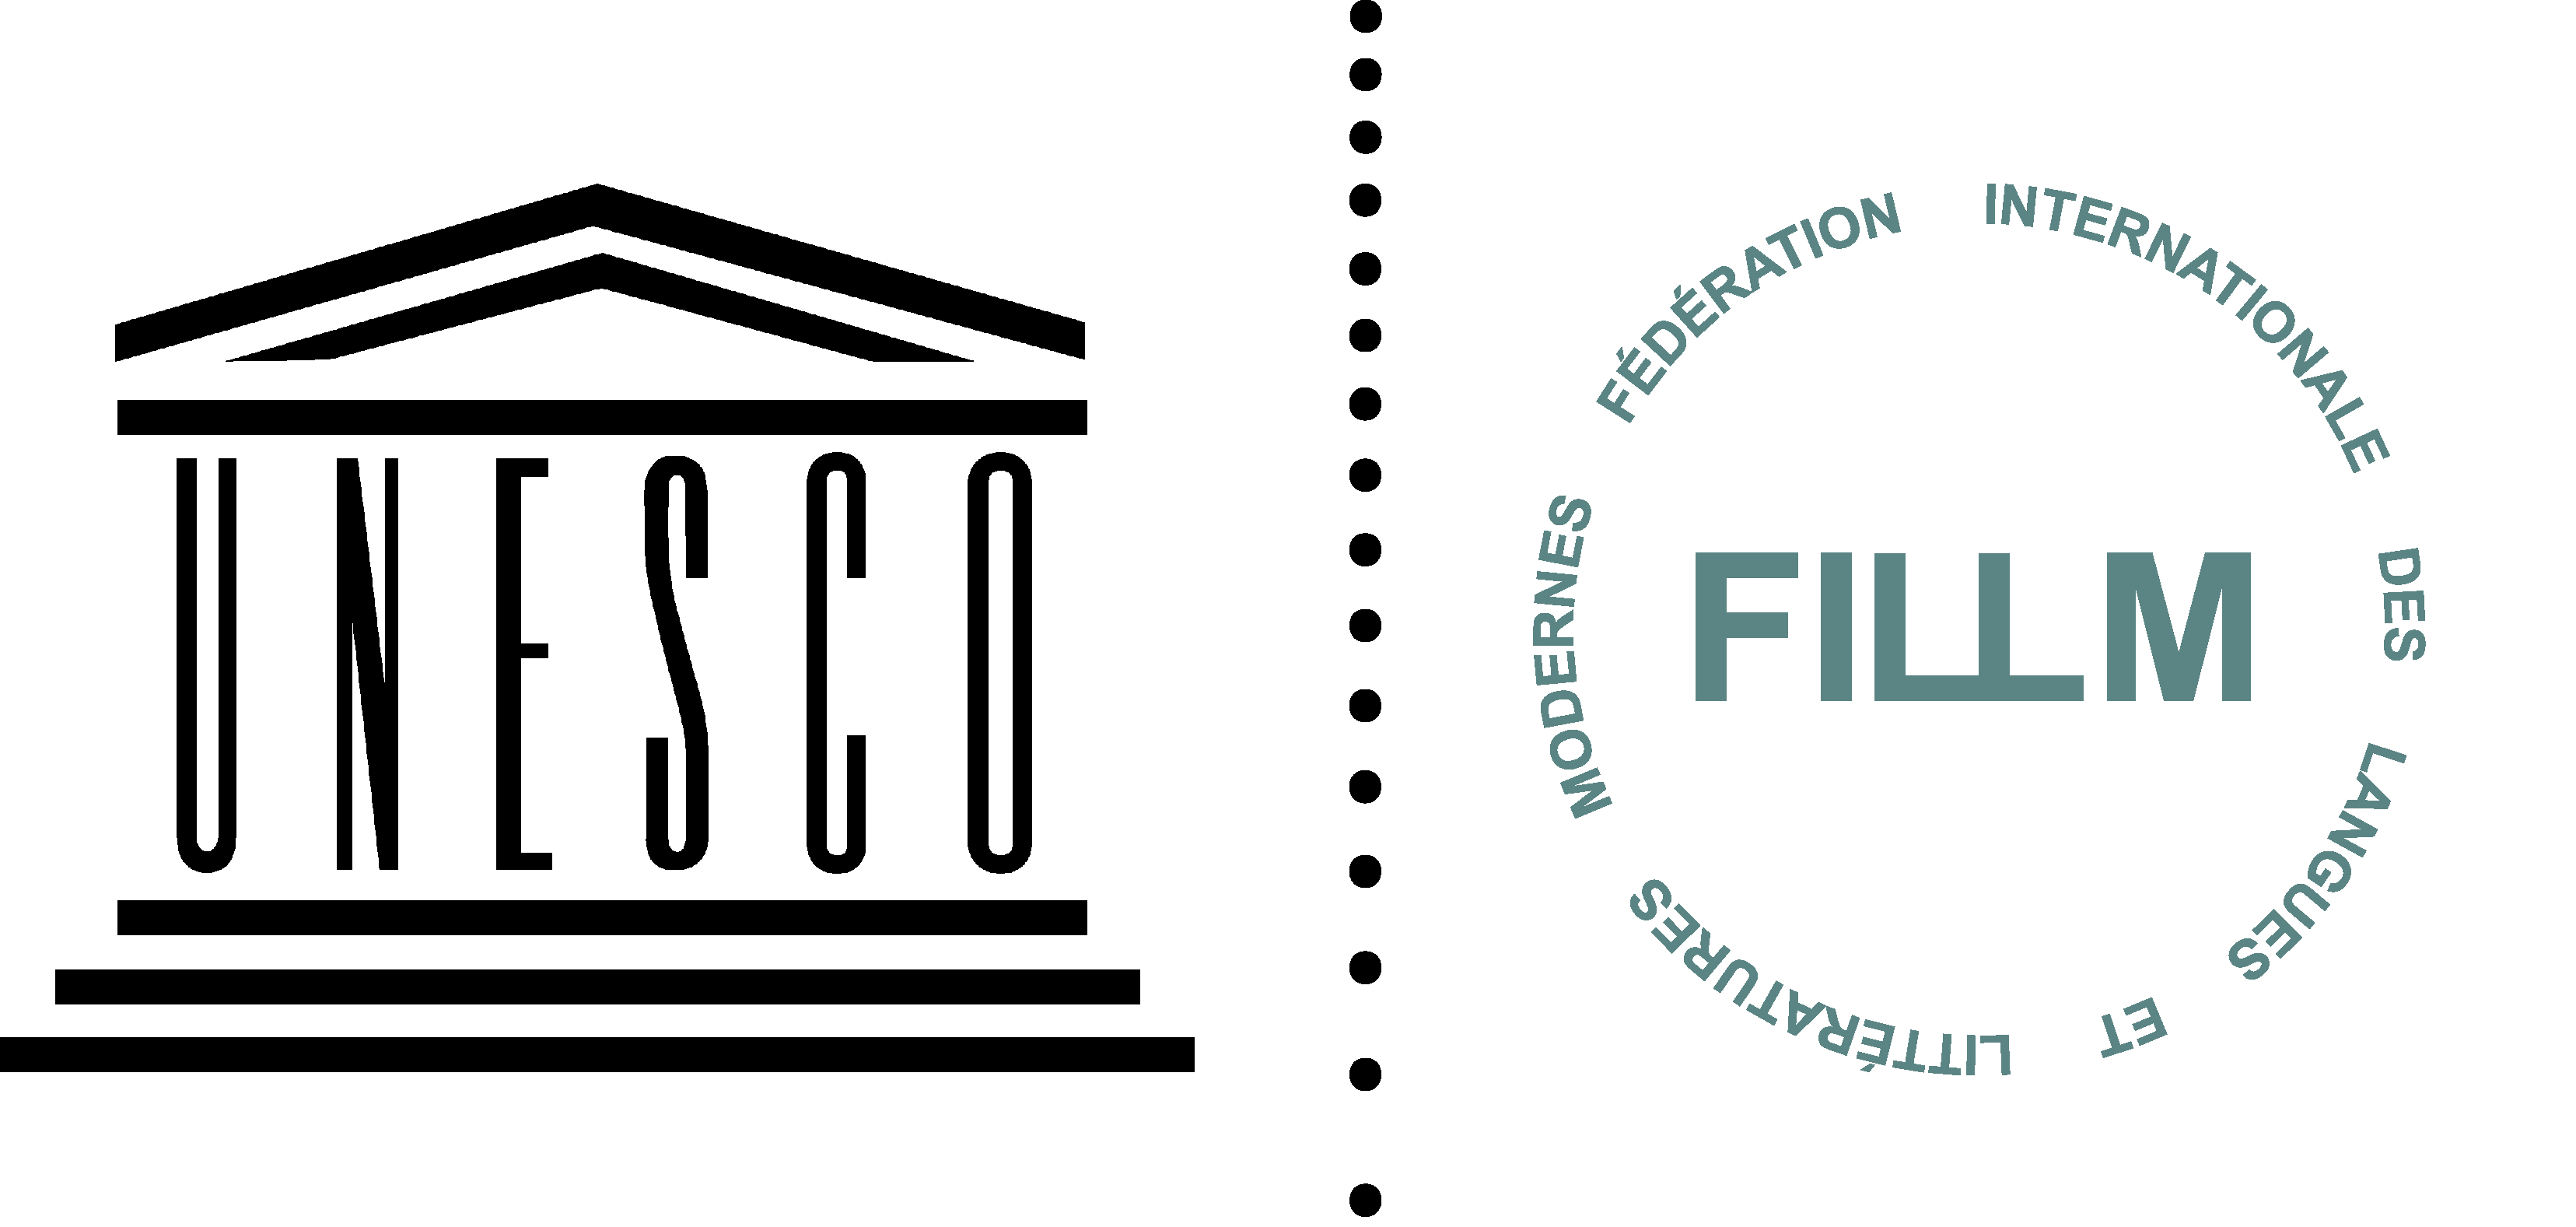 UNESCO & FILLM